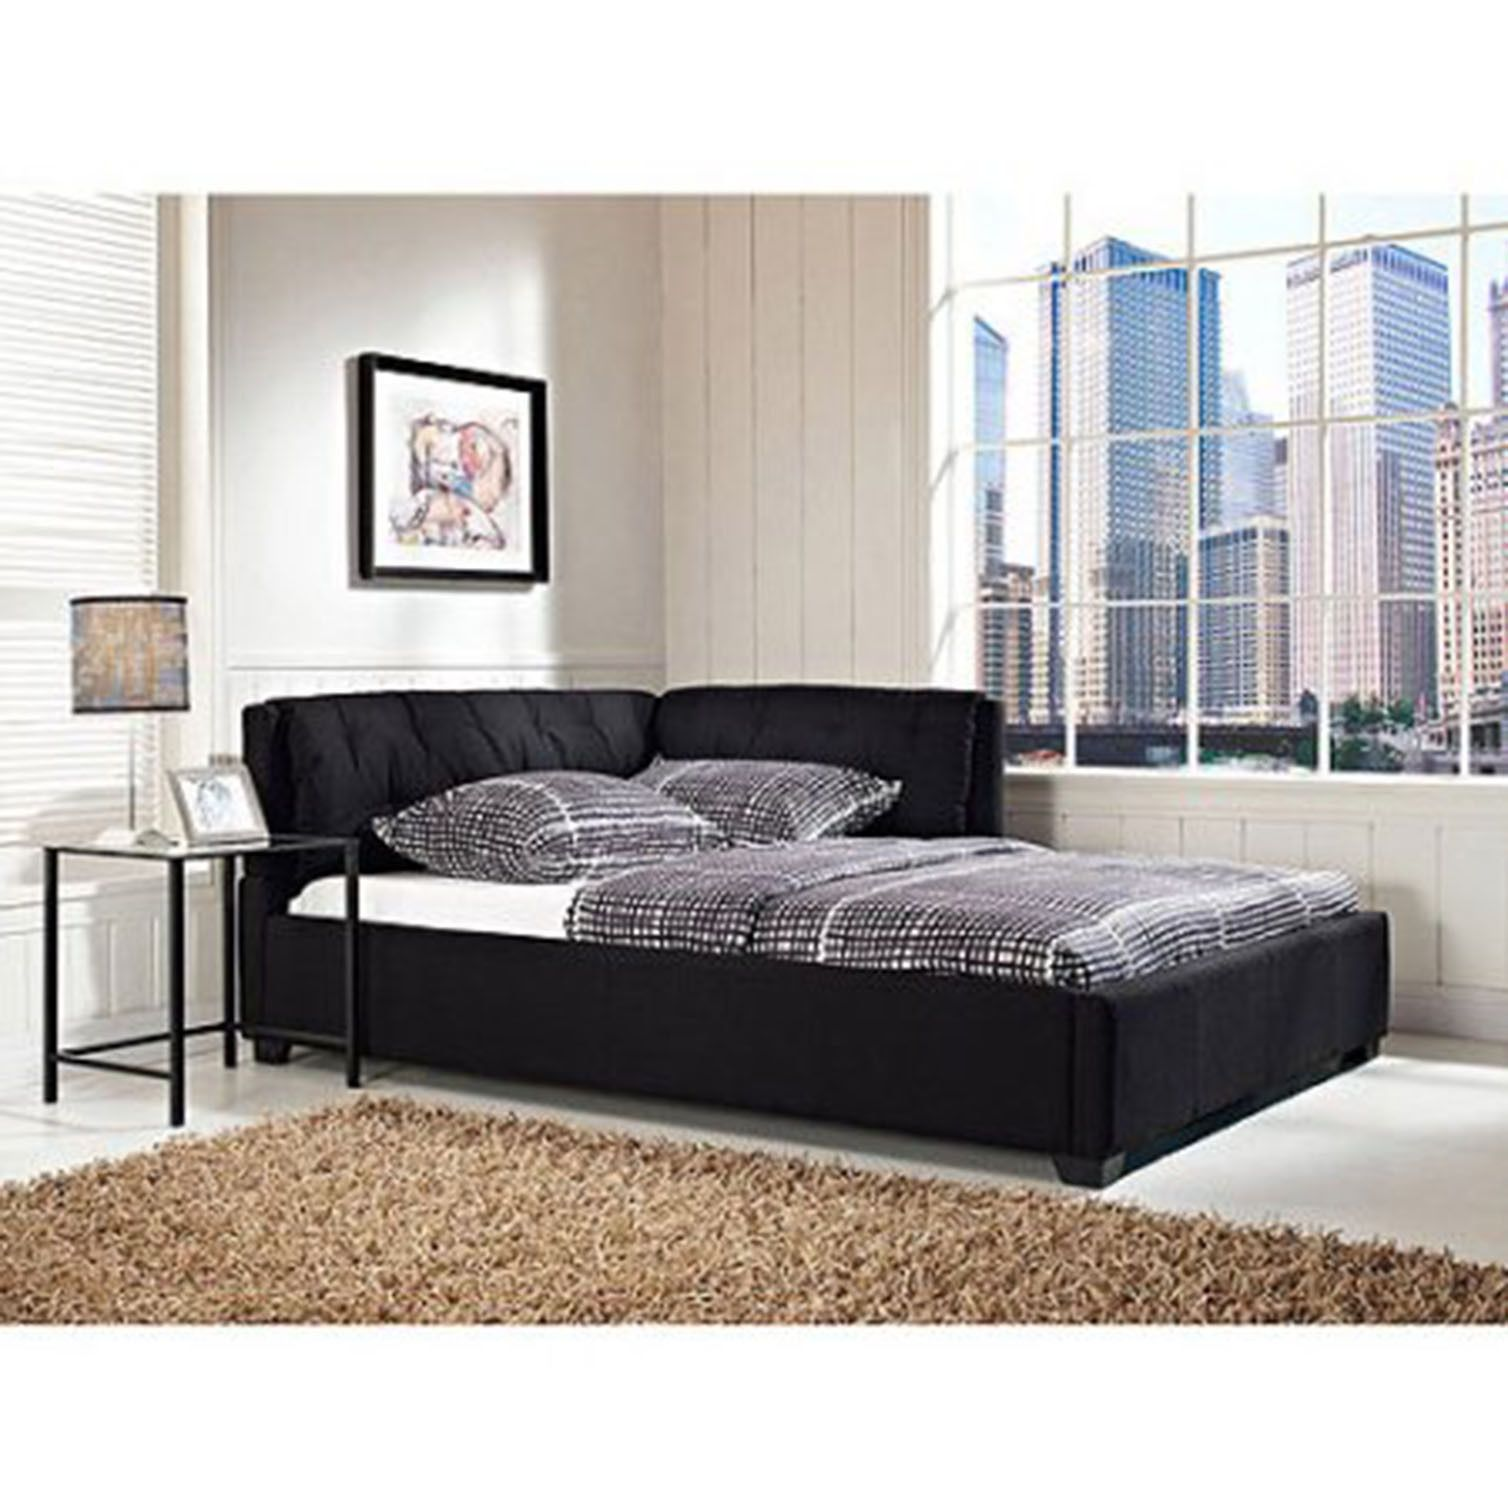 Cute Full Size Daybed Design For Your Bedroom Full Size Daybeds